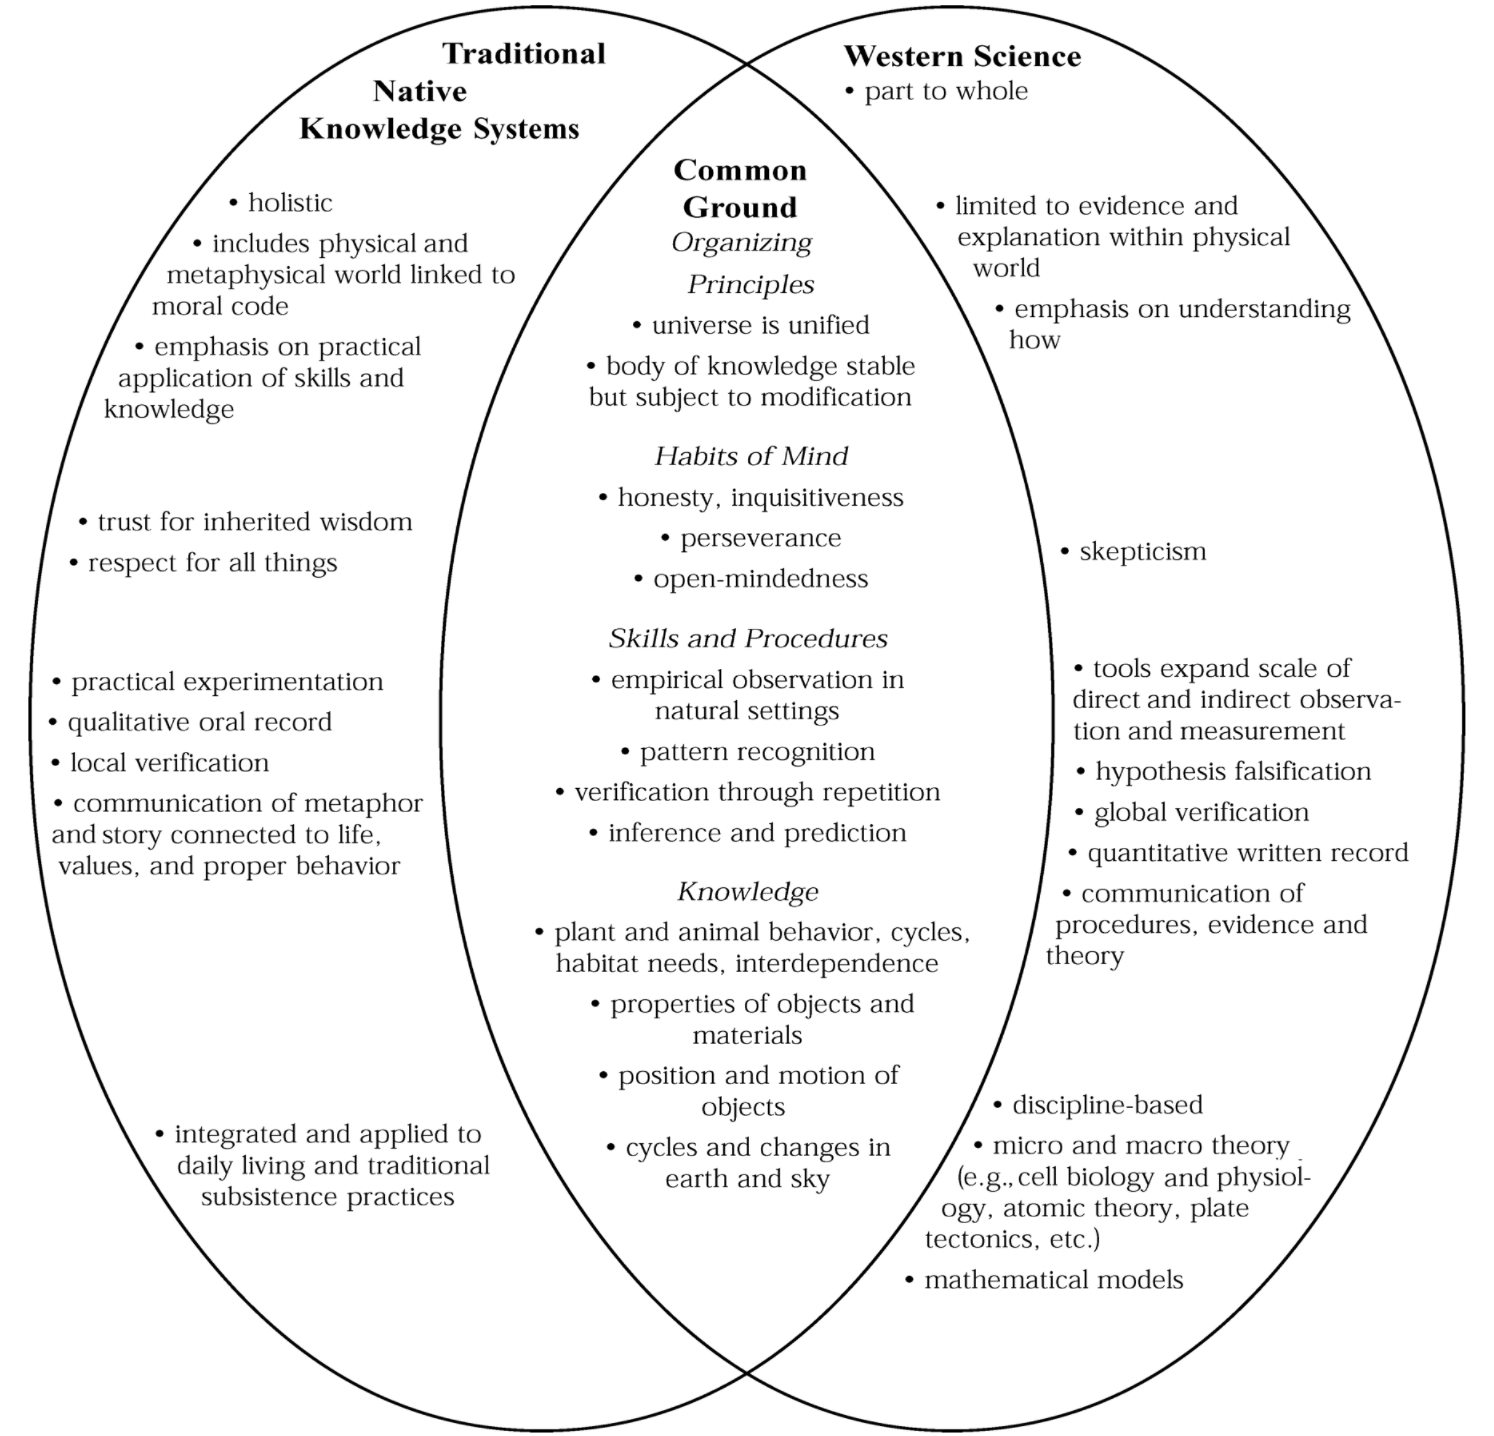 Academic Article Indigenous Knowledge Systems And Alaska Native Ways Of Knowing Indigenous Knowledge Knowledge Indigenous Education